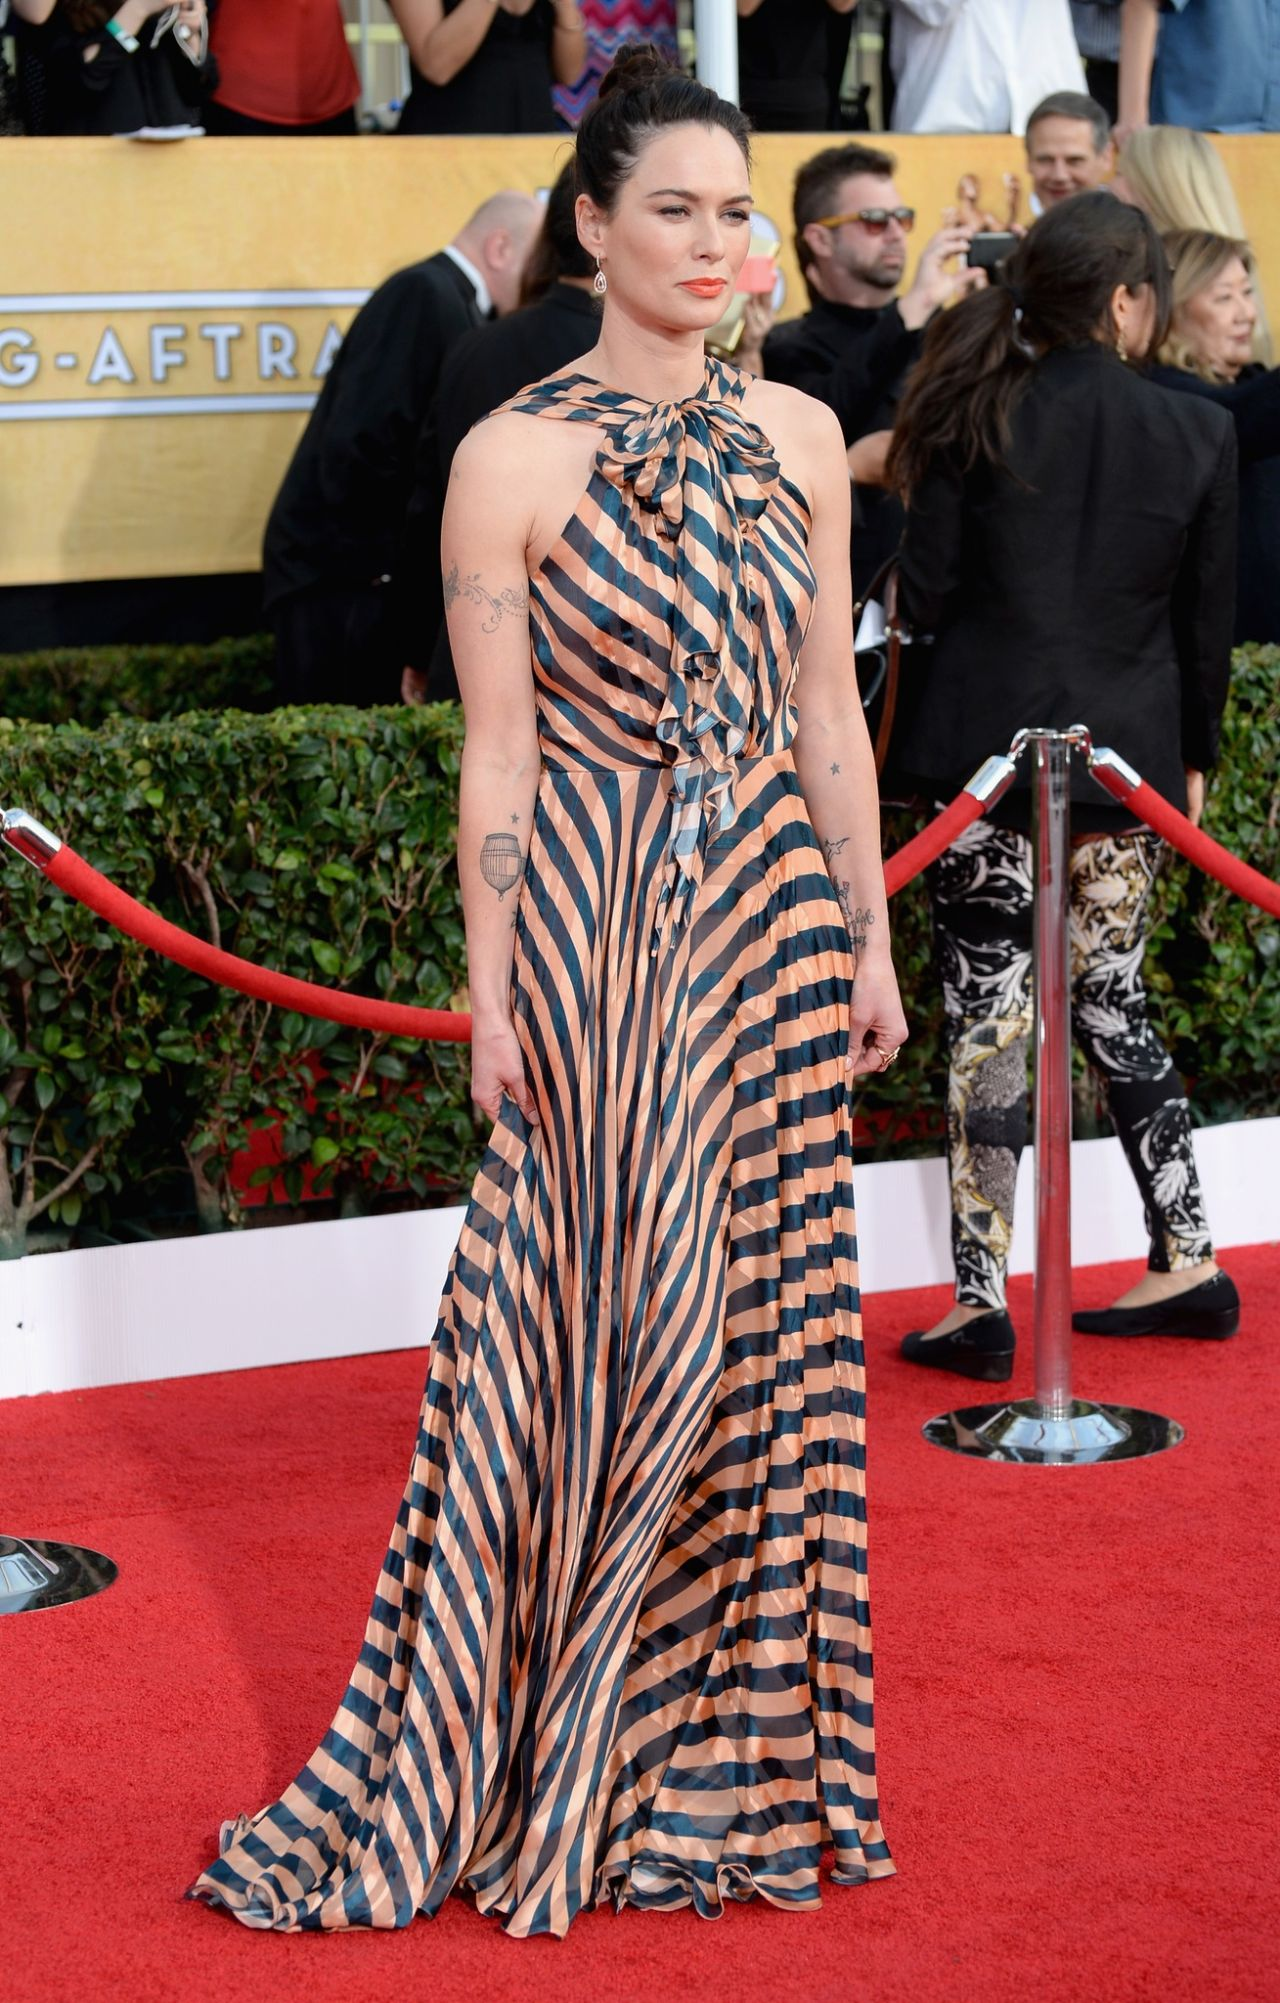 Lena Headey Wears Jenny Packham Dress at 2014 SAG Awards